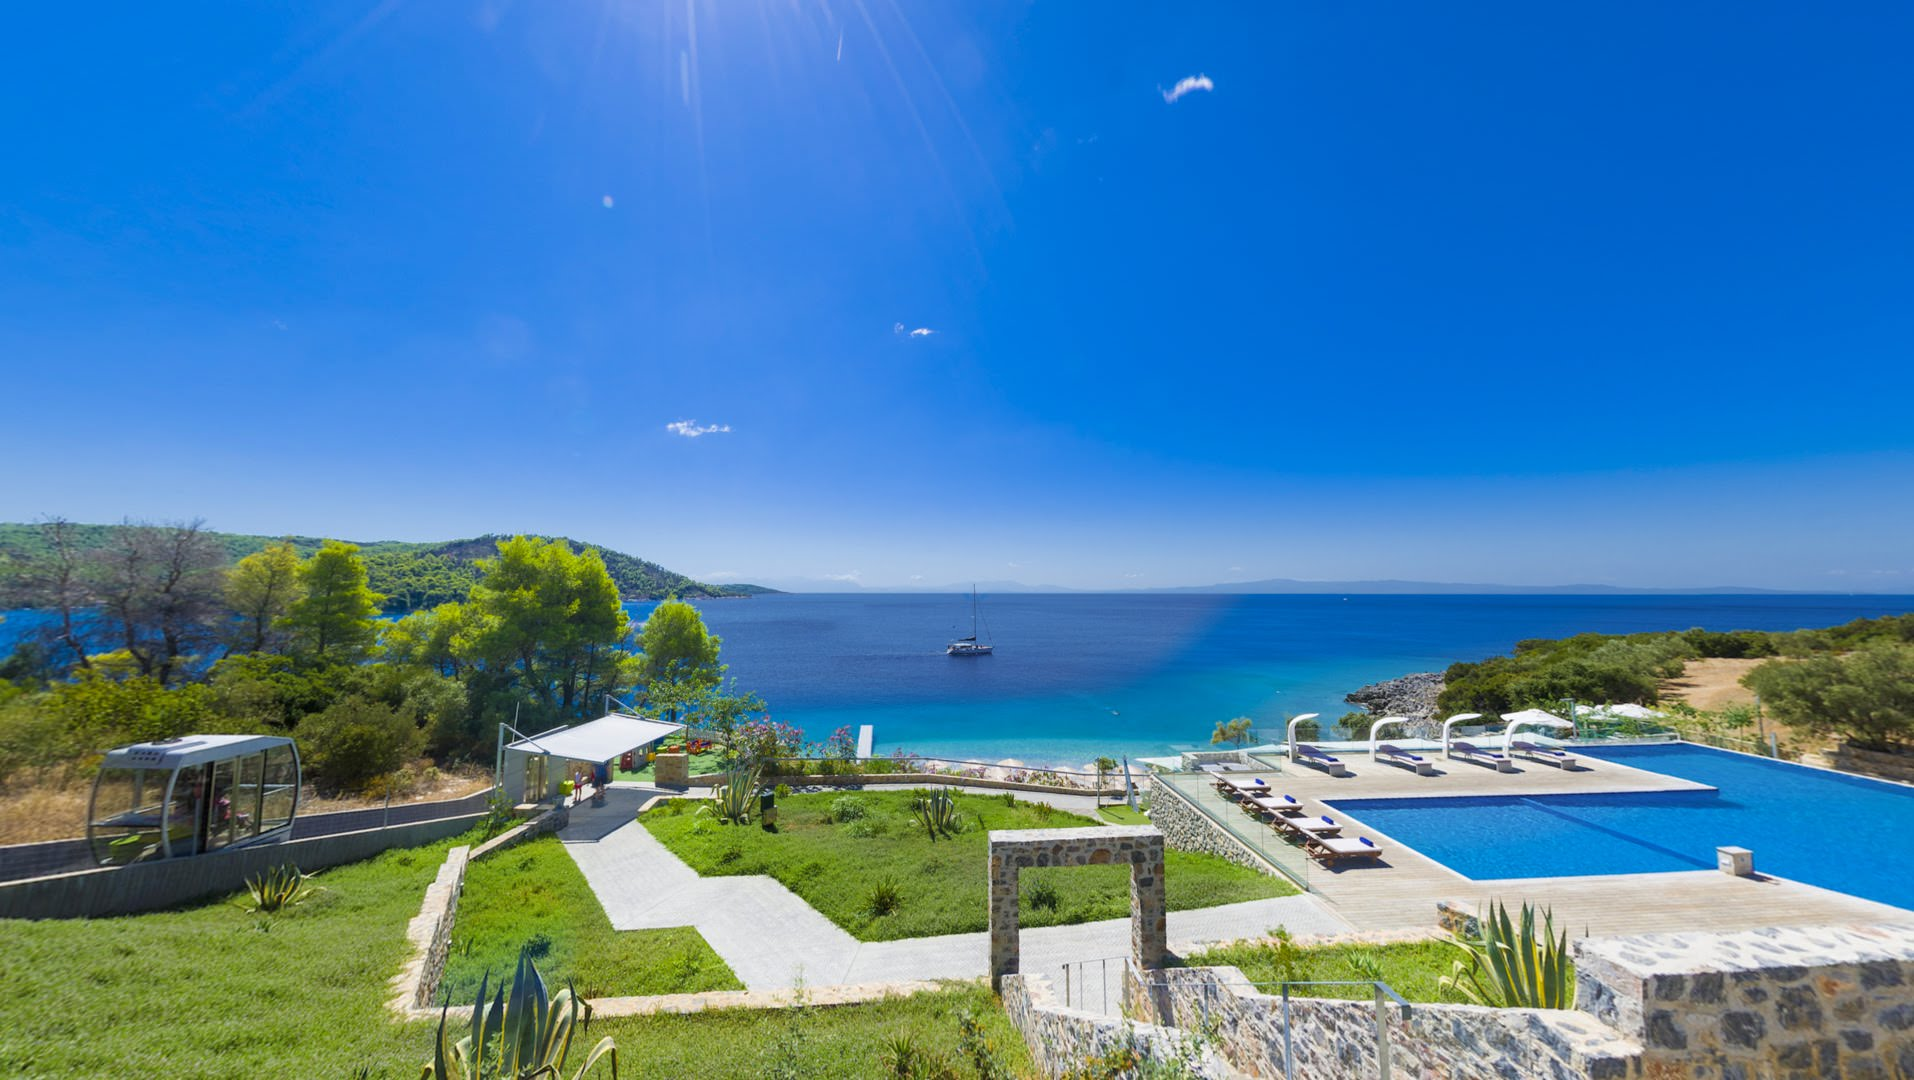 skopelos hotels adrina resort pool villa 32.07